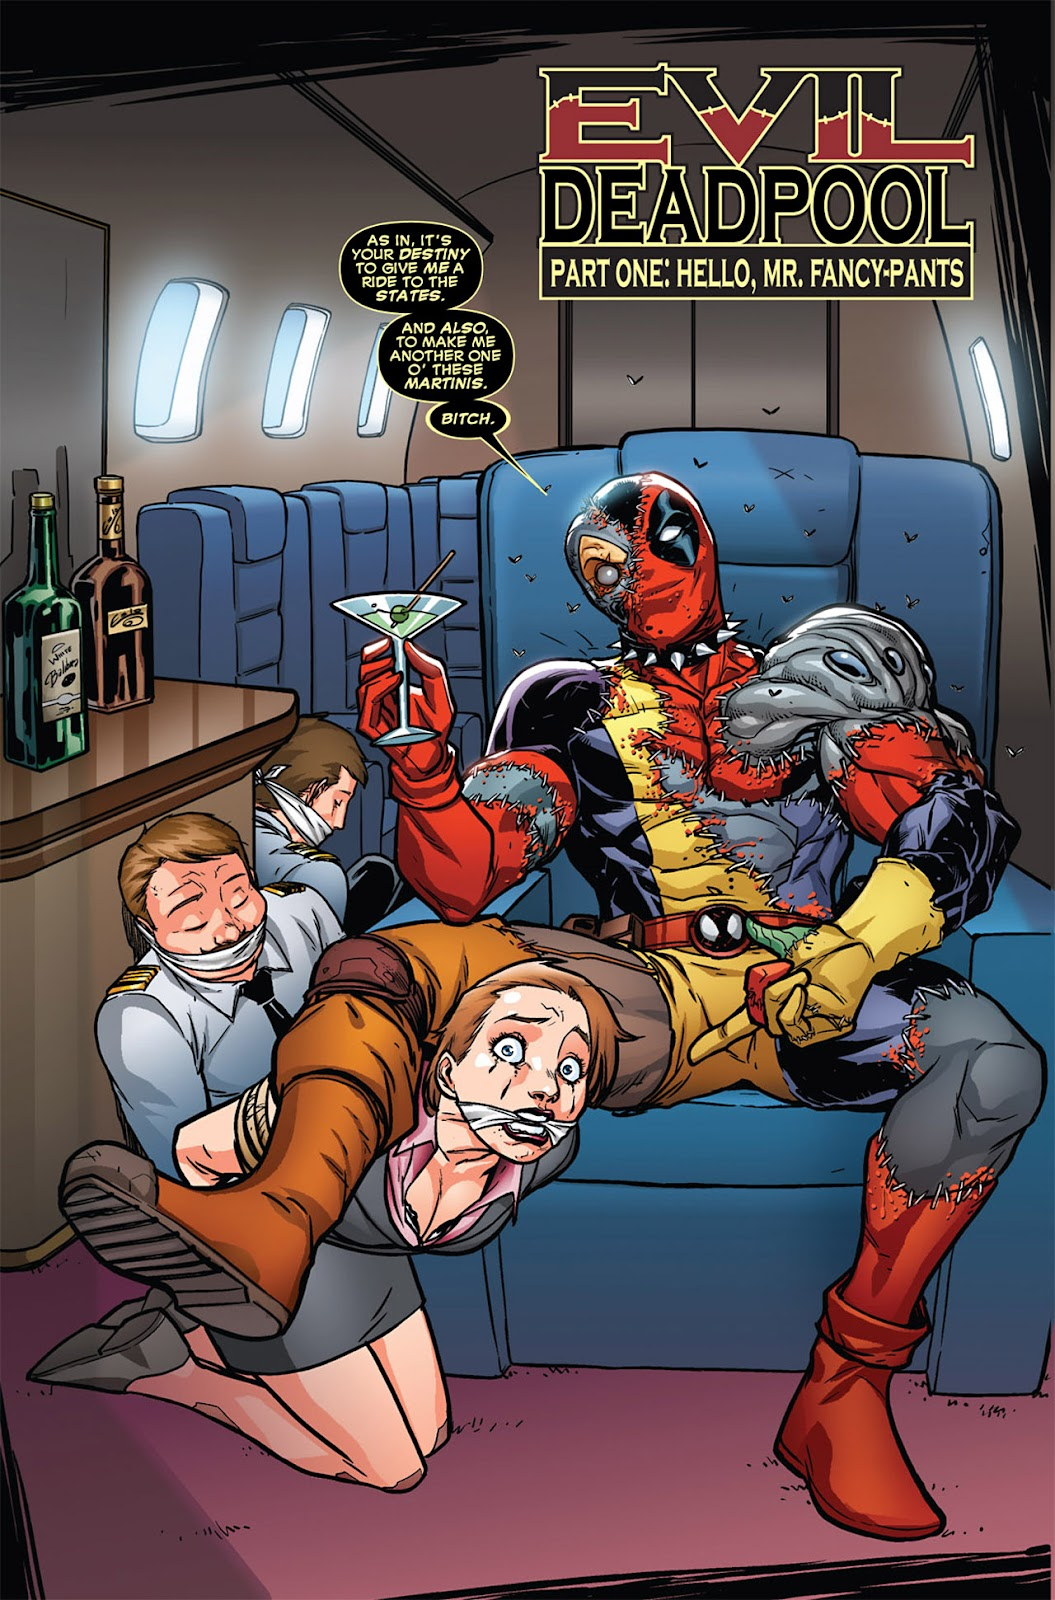 Read online Deadpool (2008) comic -  Issue #45 - 4